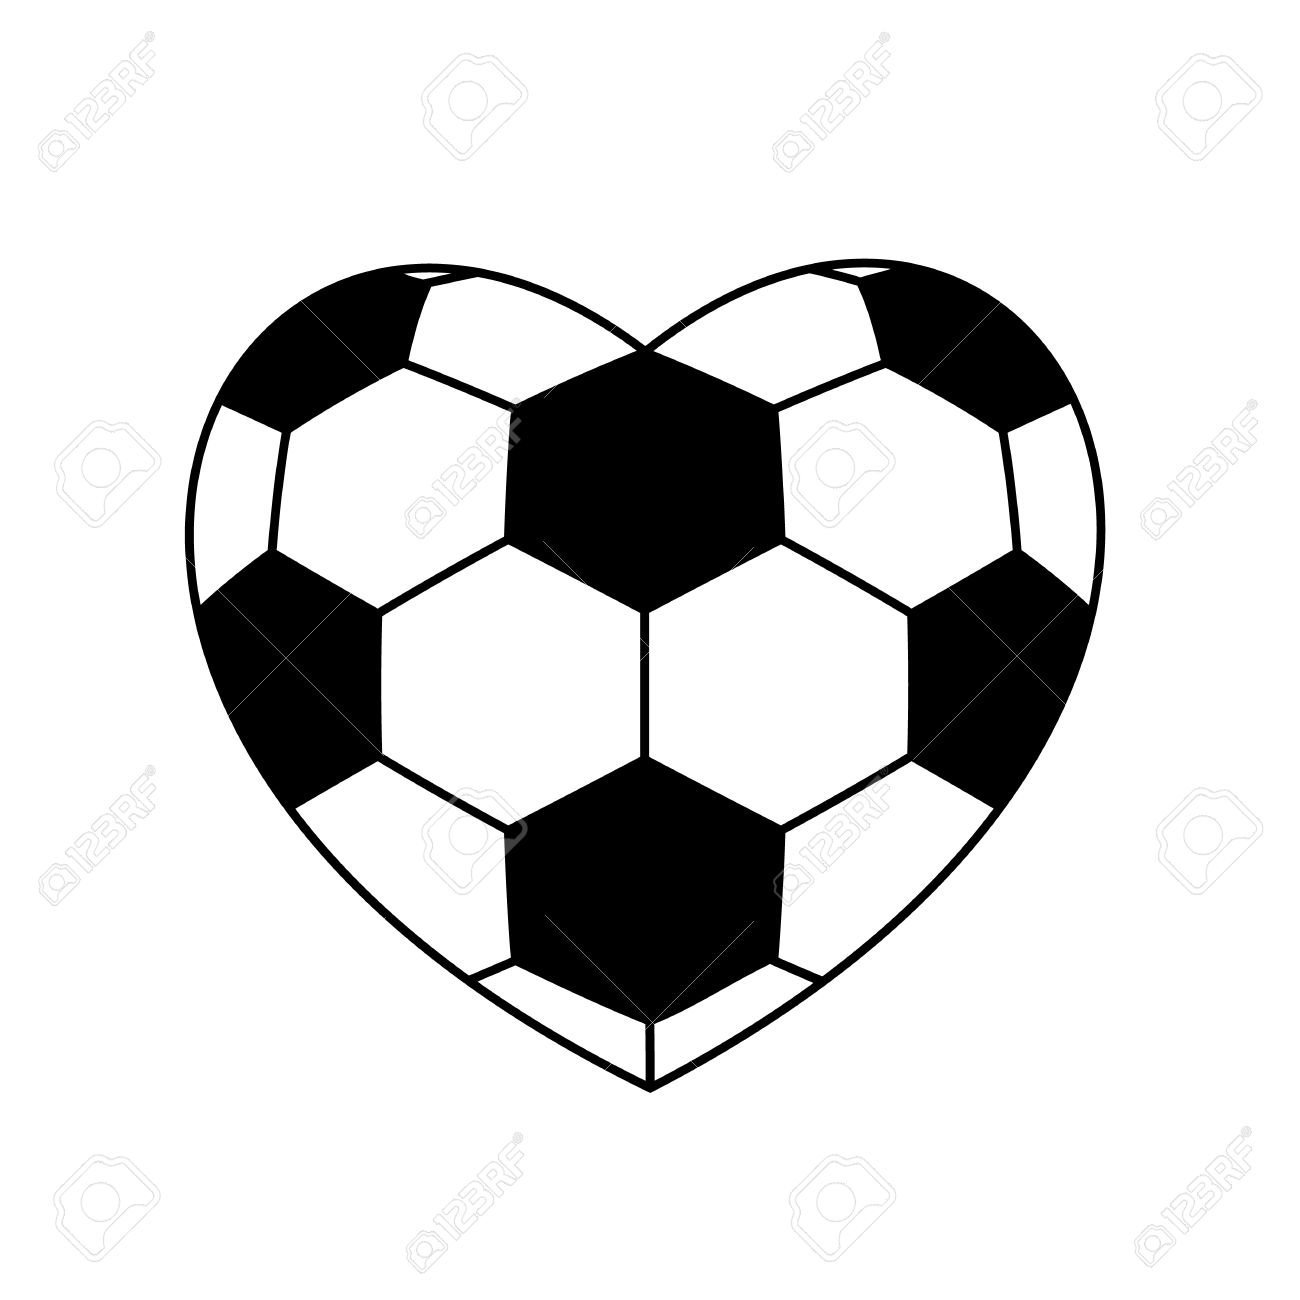 1,424 Soccer Heart Stock Vector Illustration And Royalty Free.